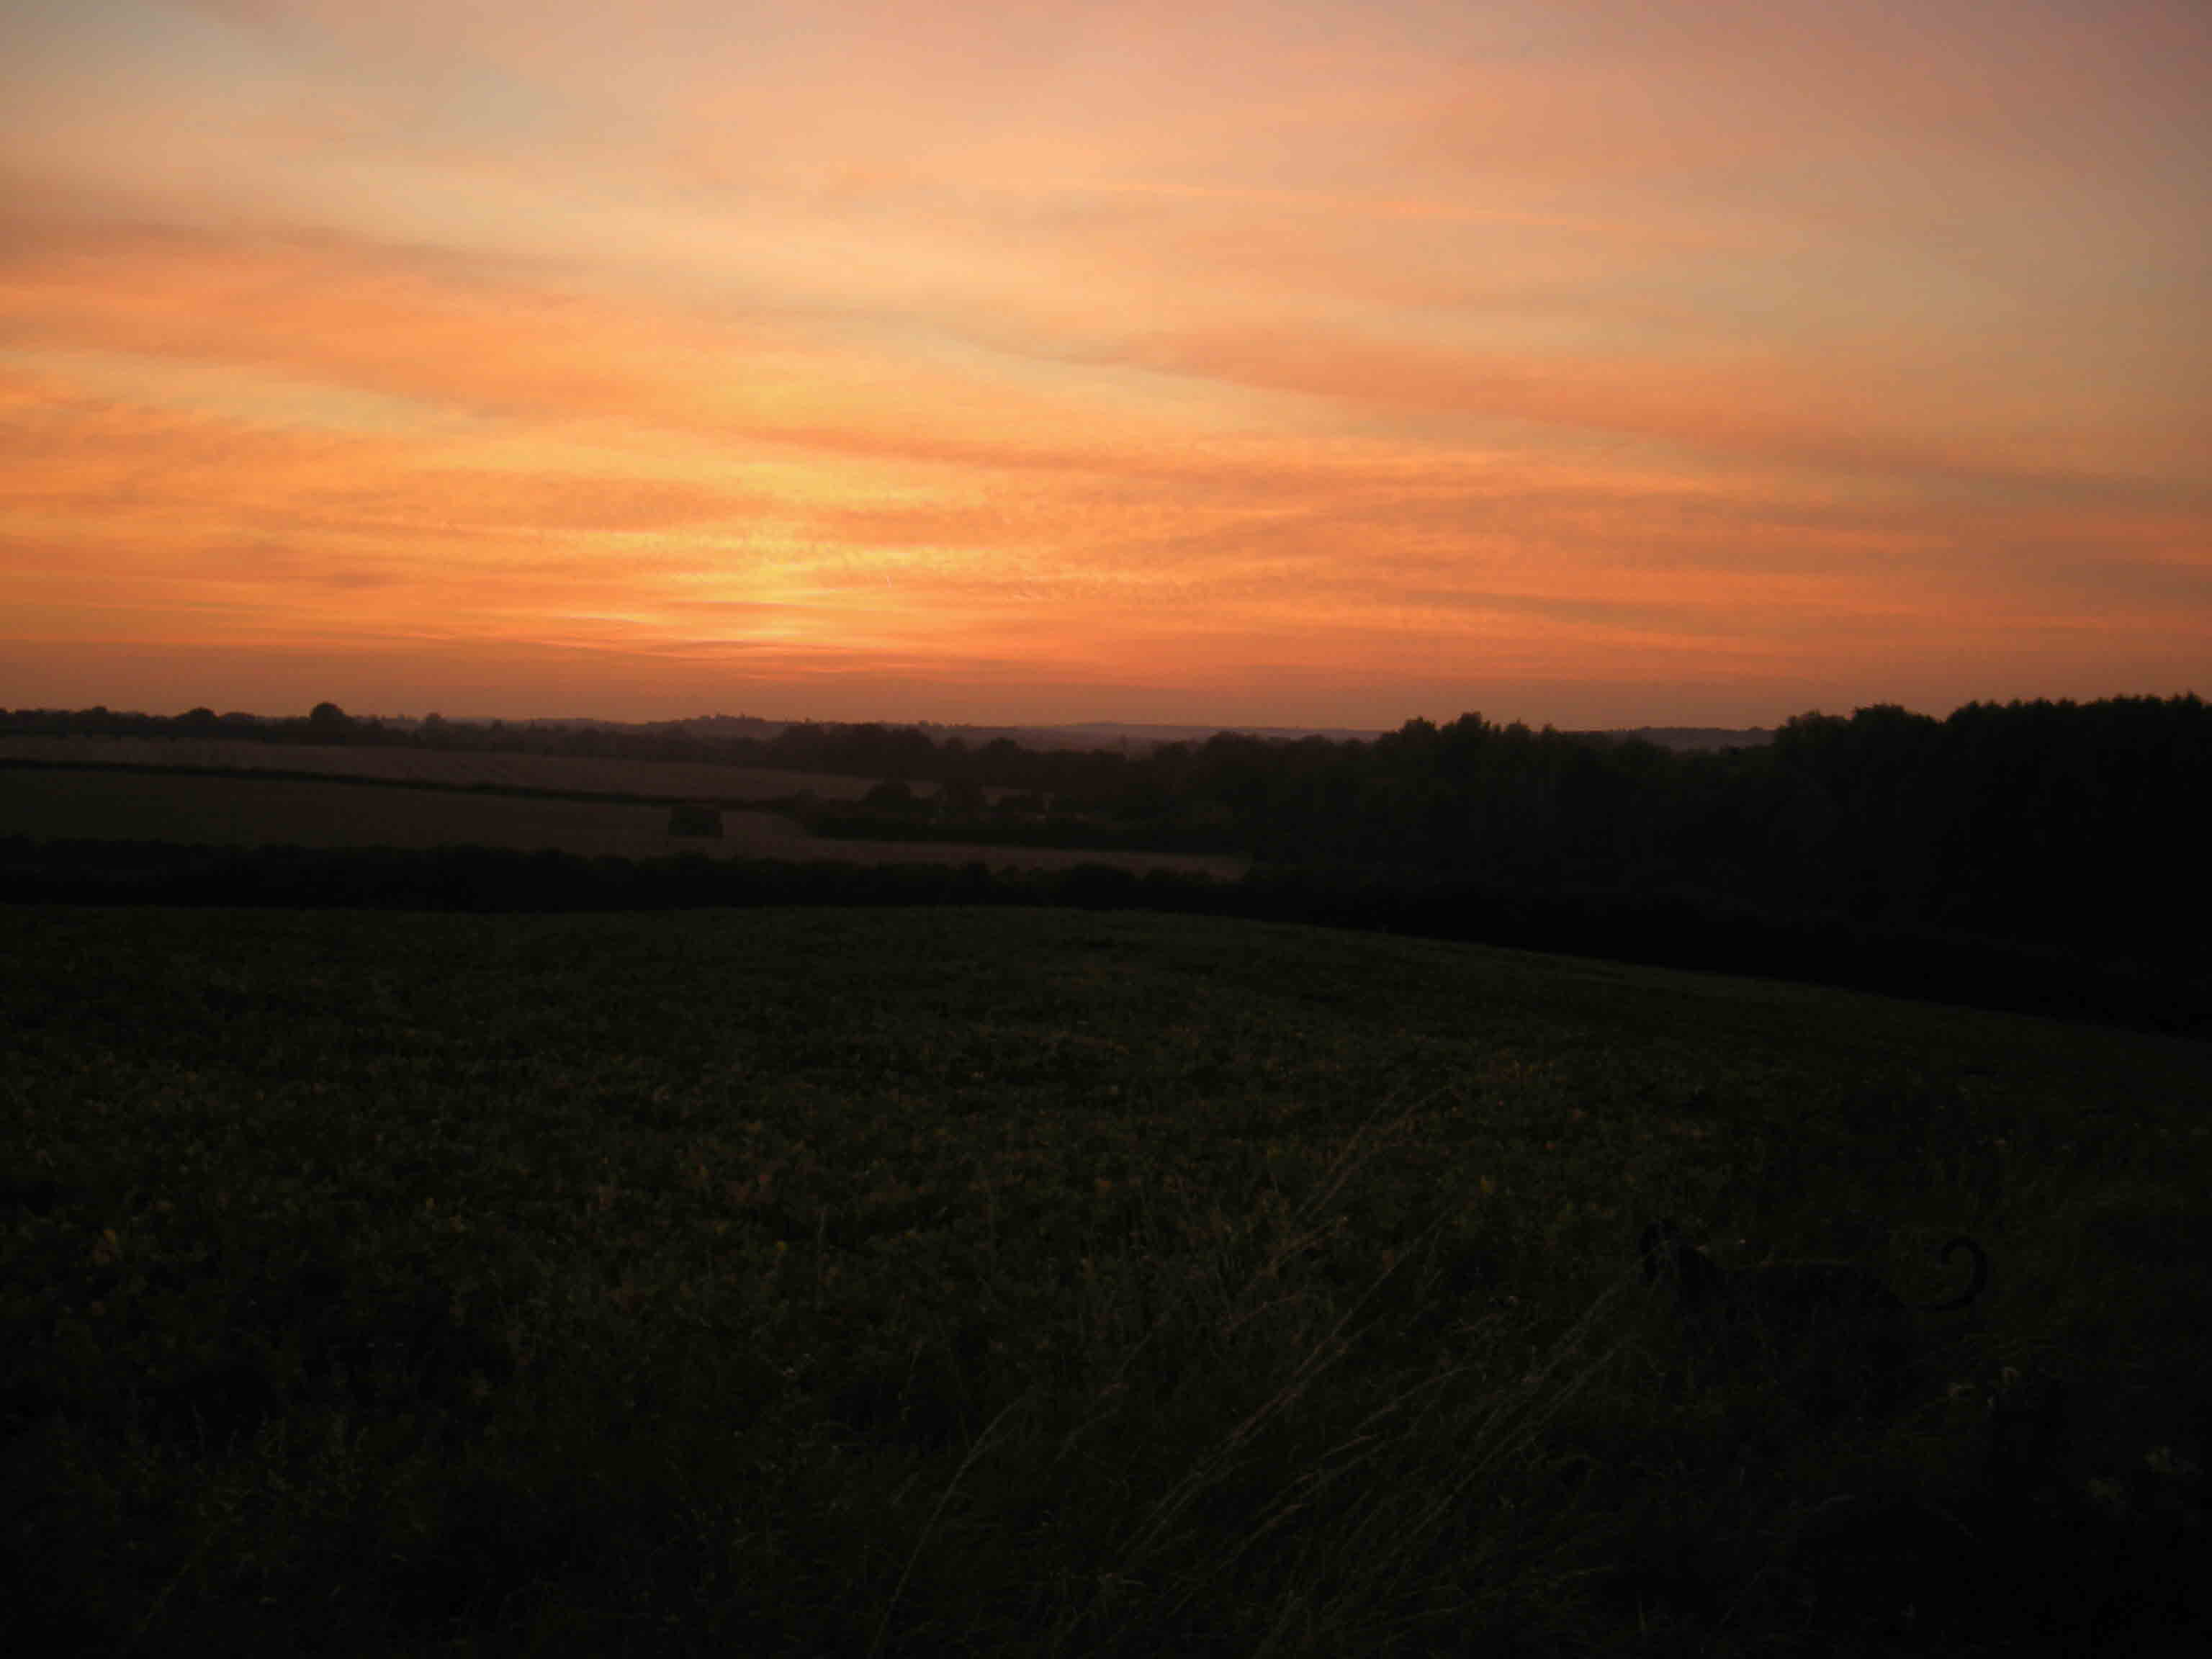 Sunset over the straw